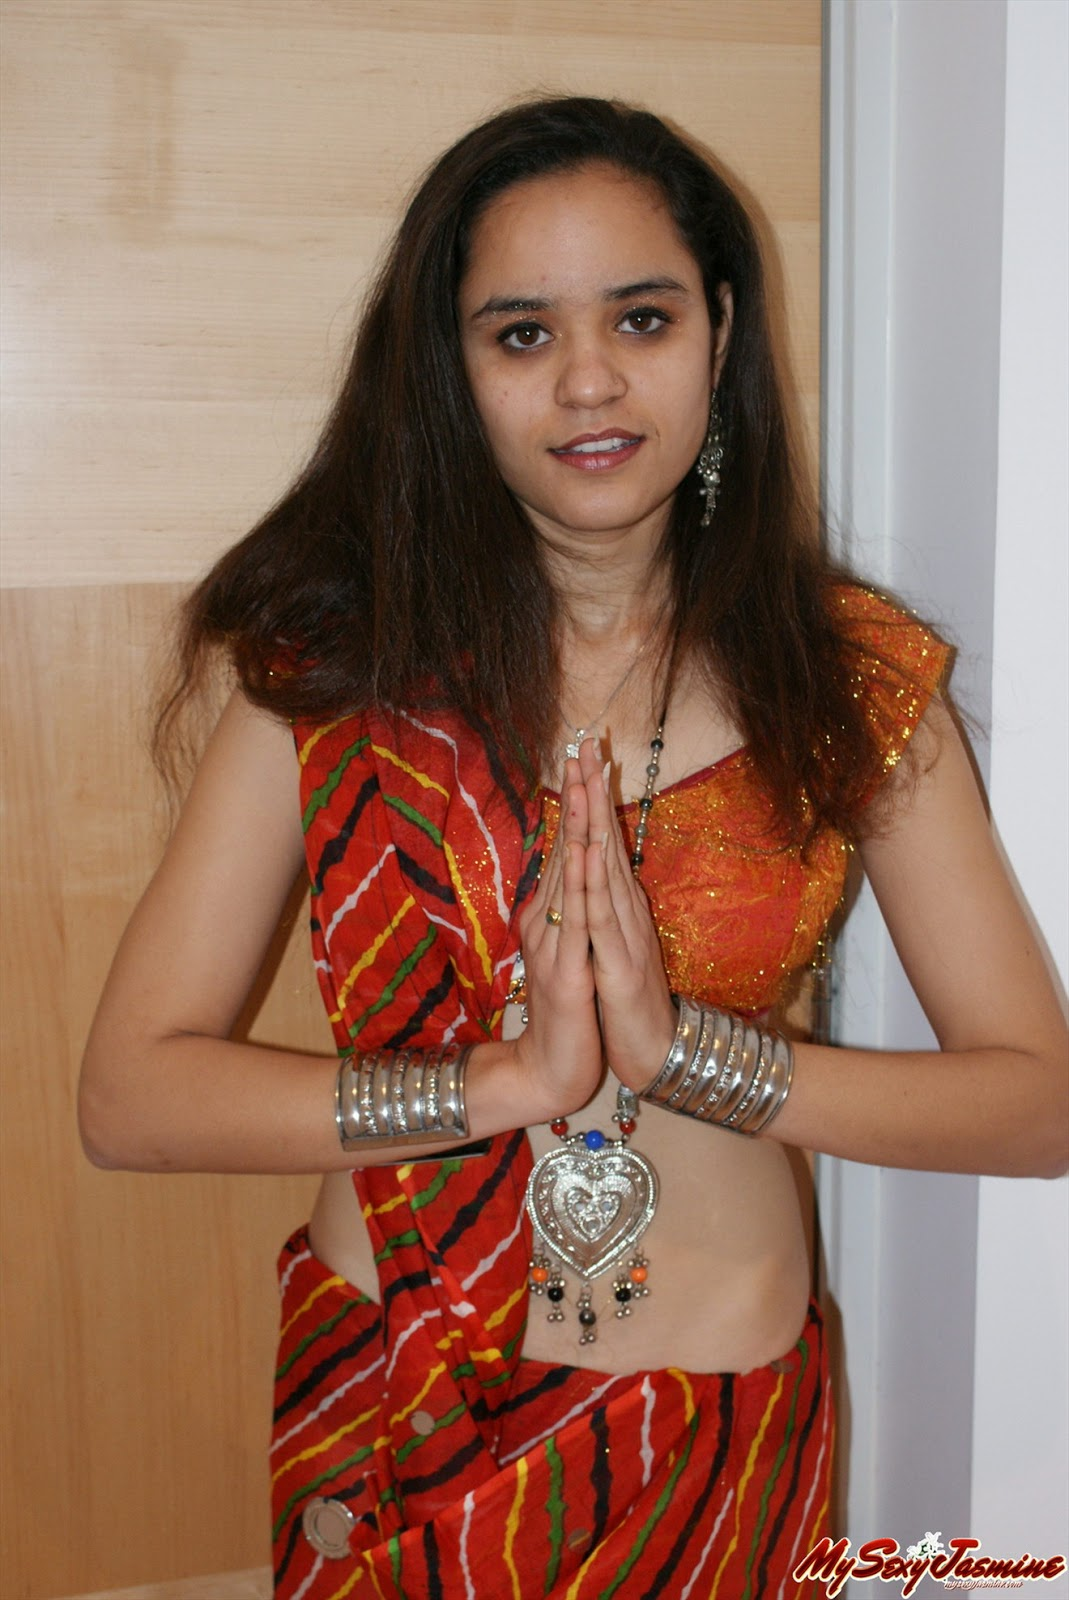 Hot desi girls in chaniya choli share